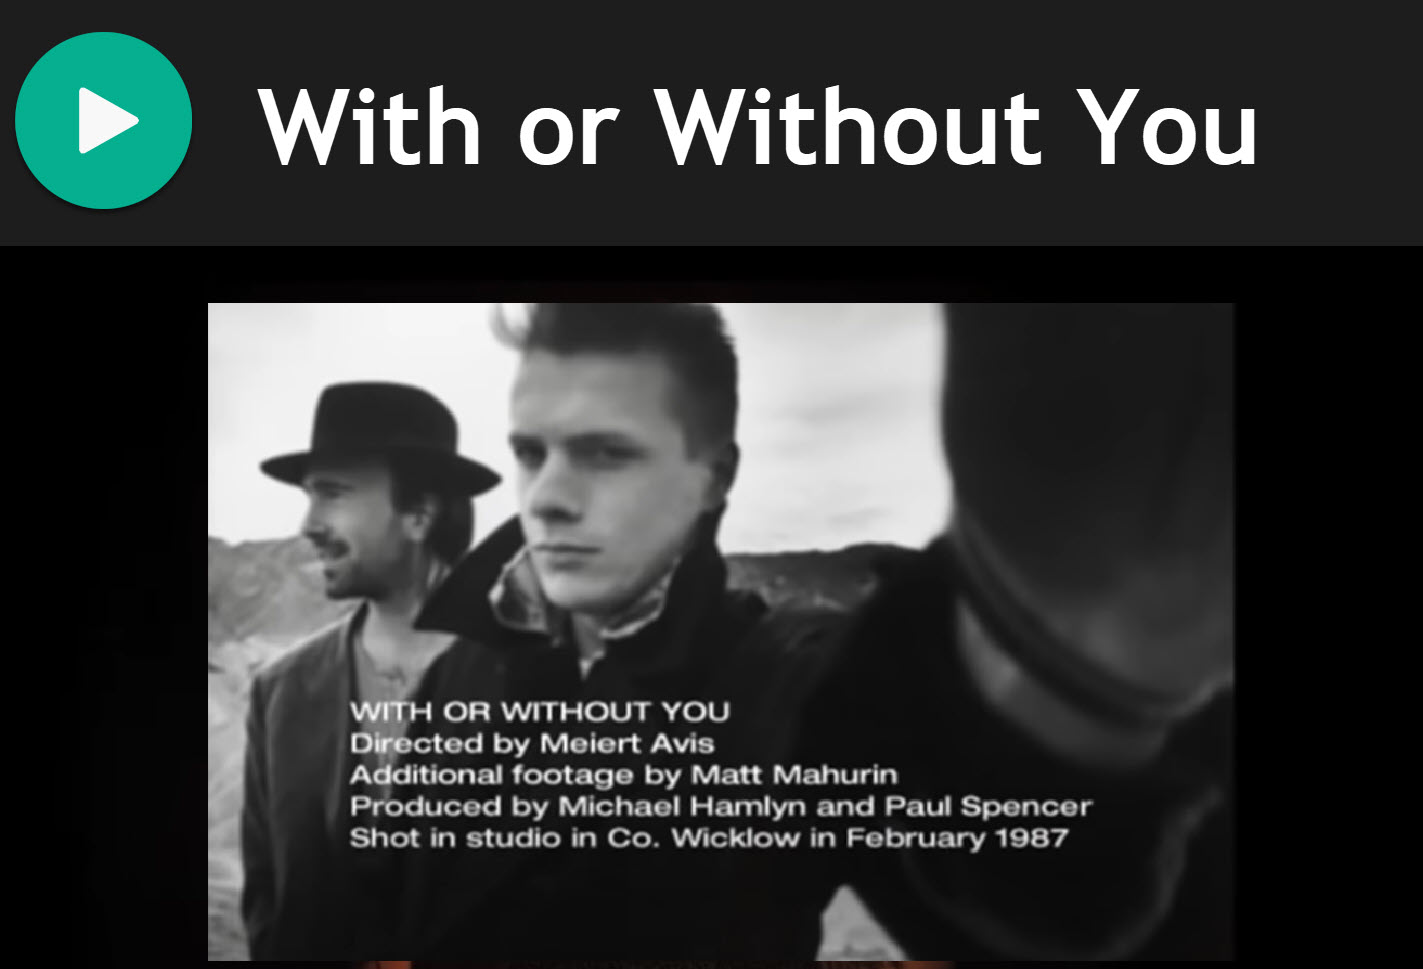 With or without you by U2 for Bagpipes